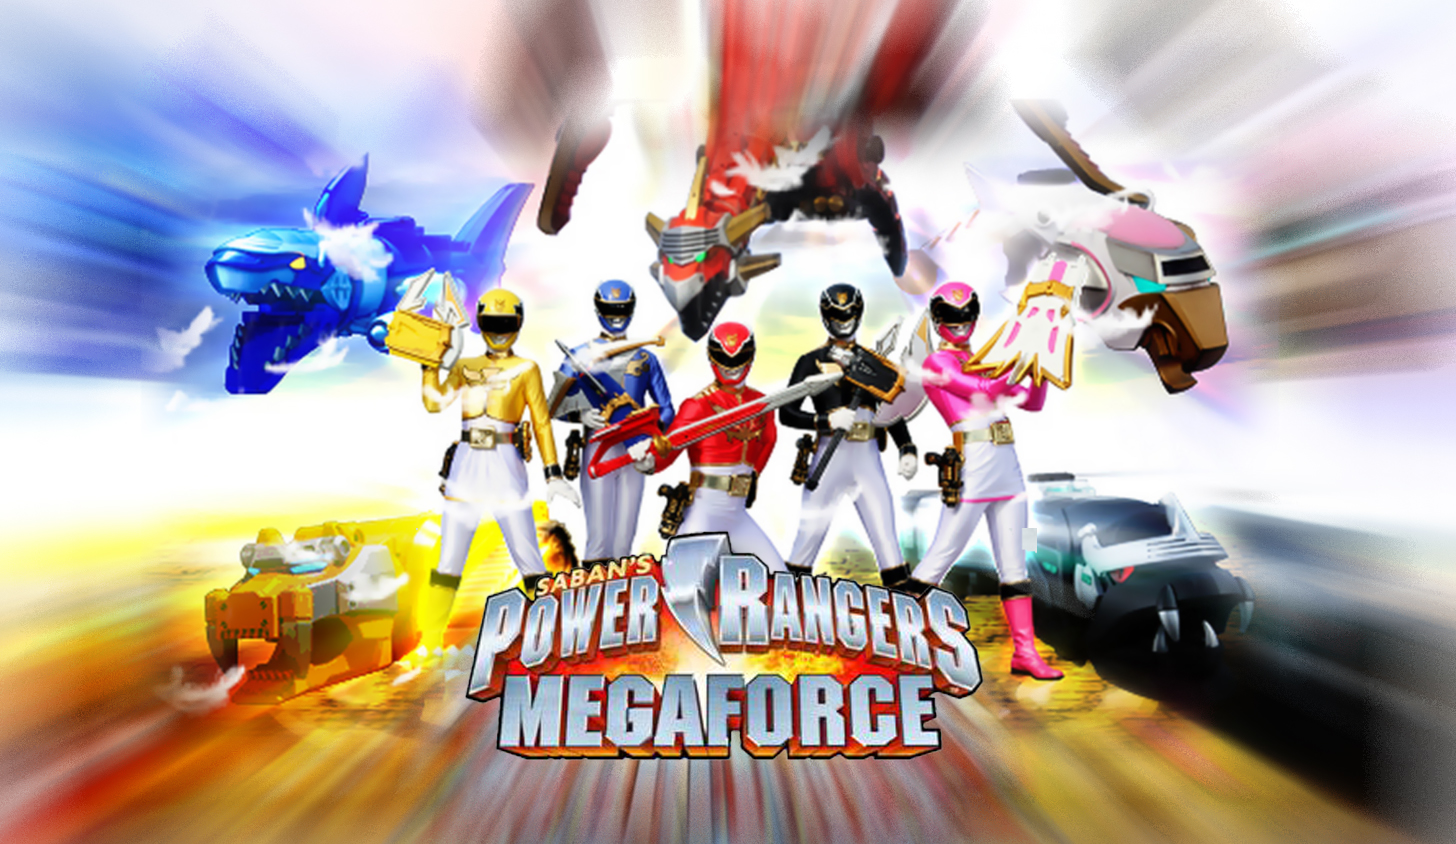 Power Rangers Megaforce 10 Серия, На Русском ()